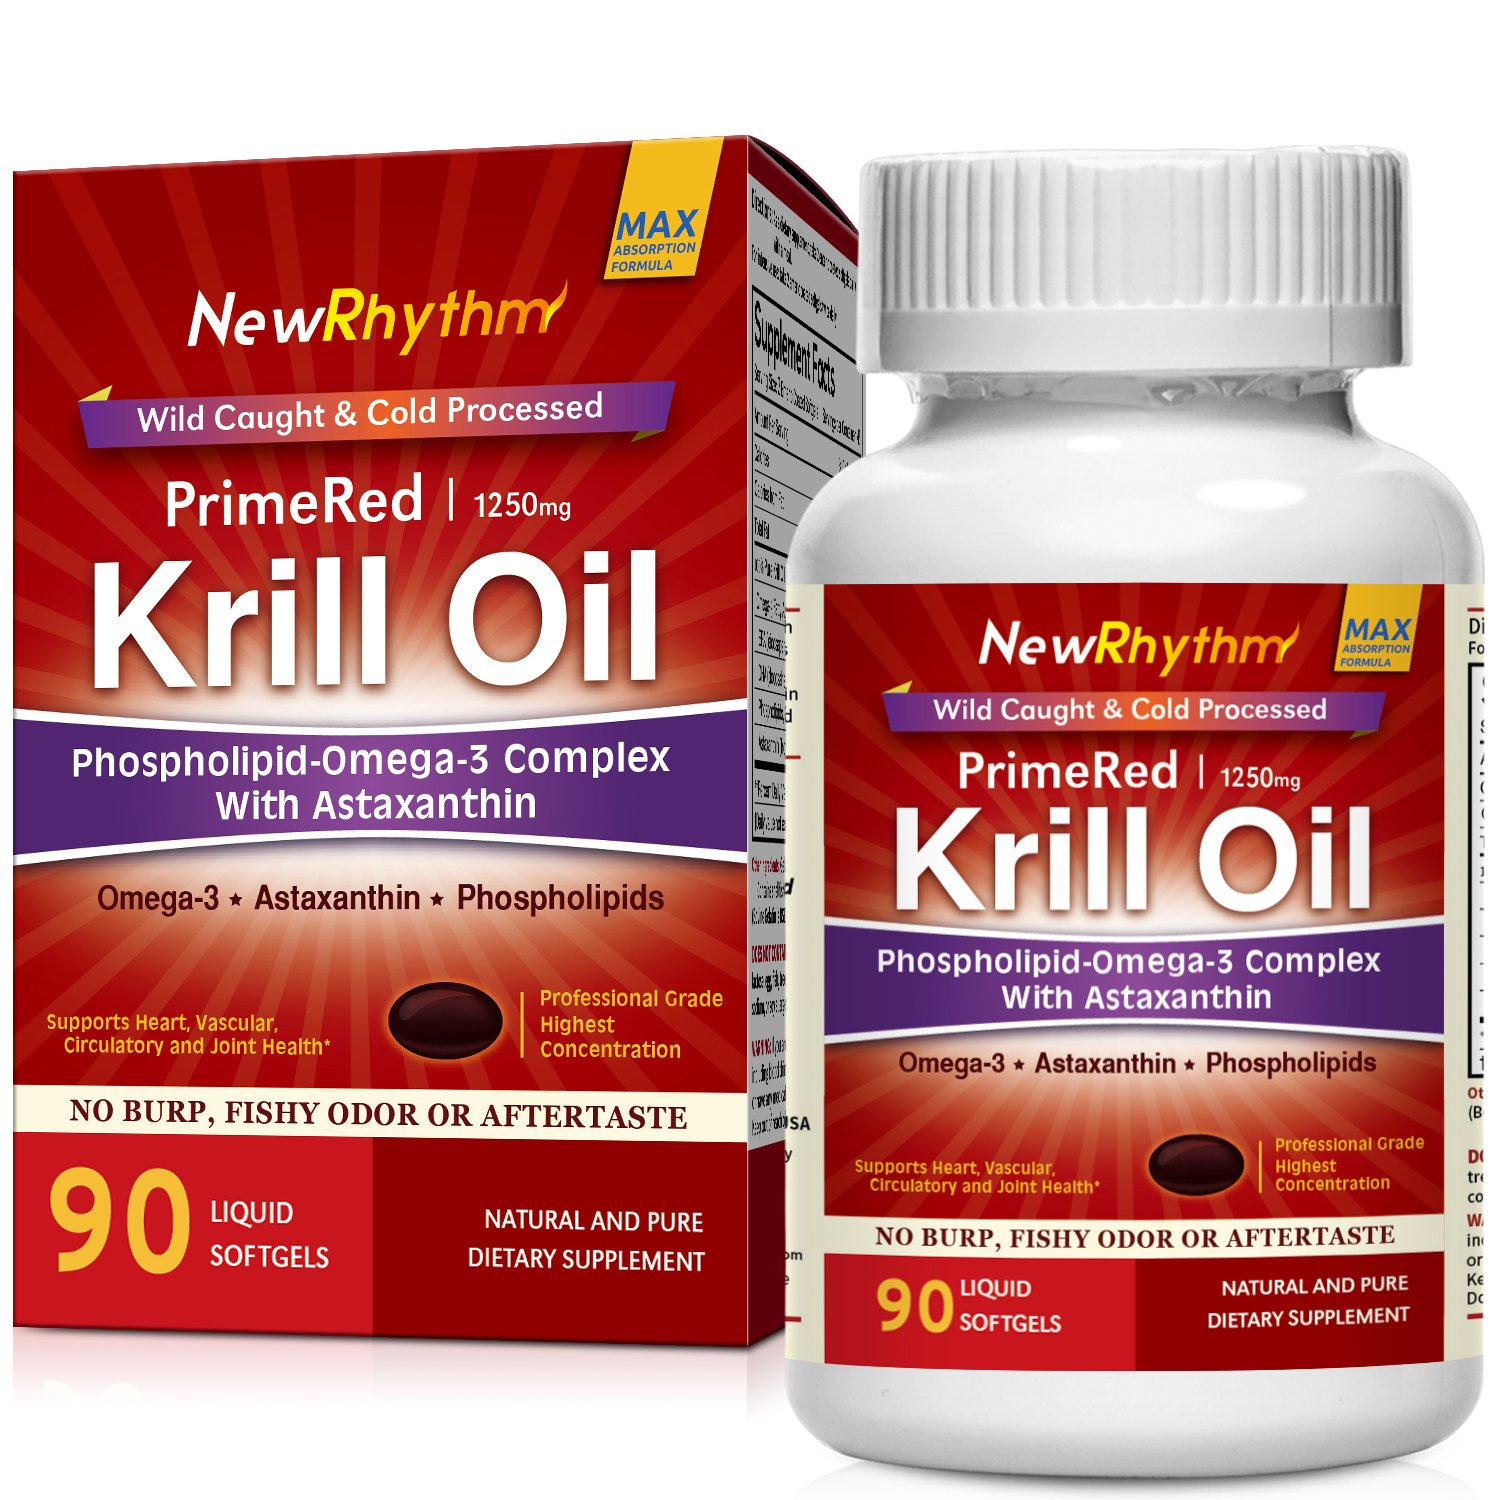 NewRhythm Krill Oil, 1250mg High Potency, Pharma Grade 90 Softgels